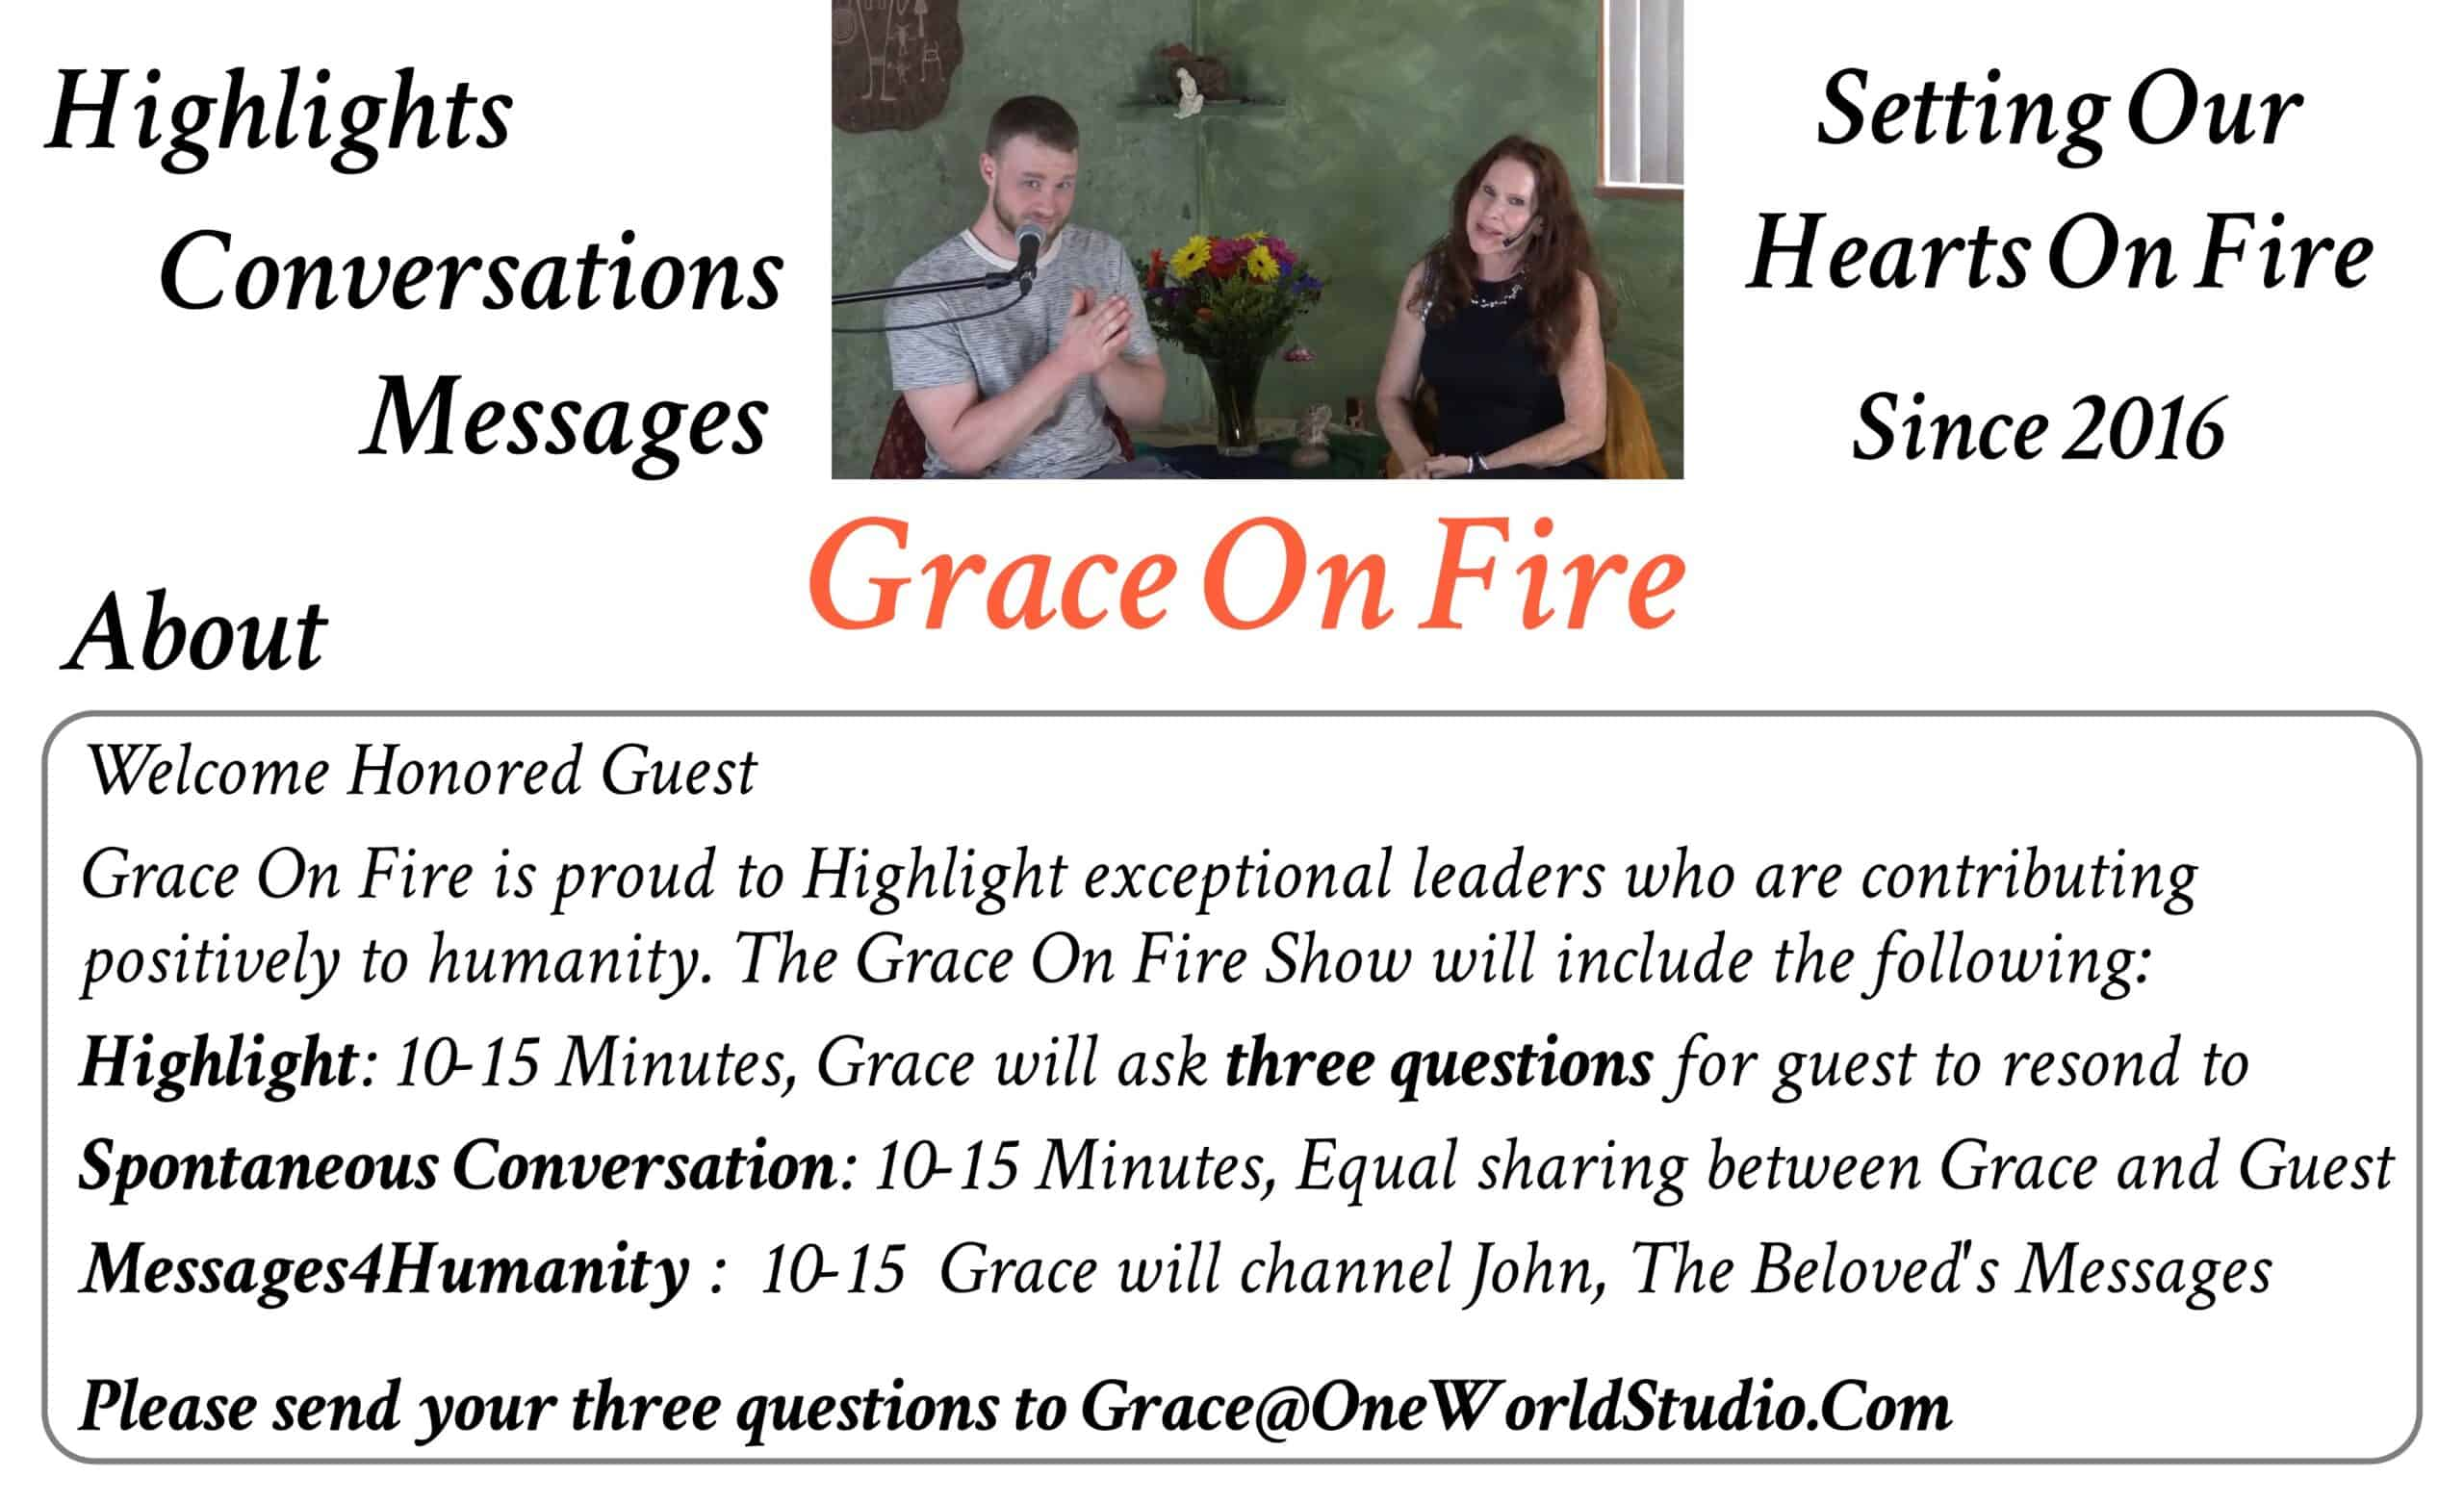 Send 3 Questions to Grace